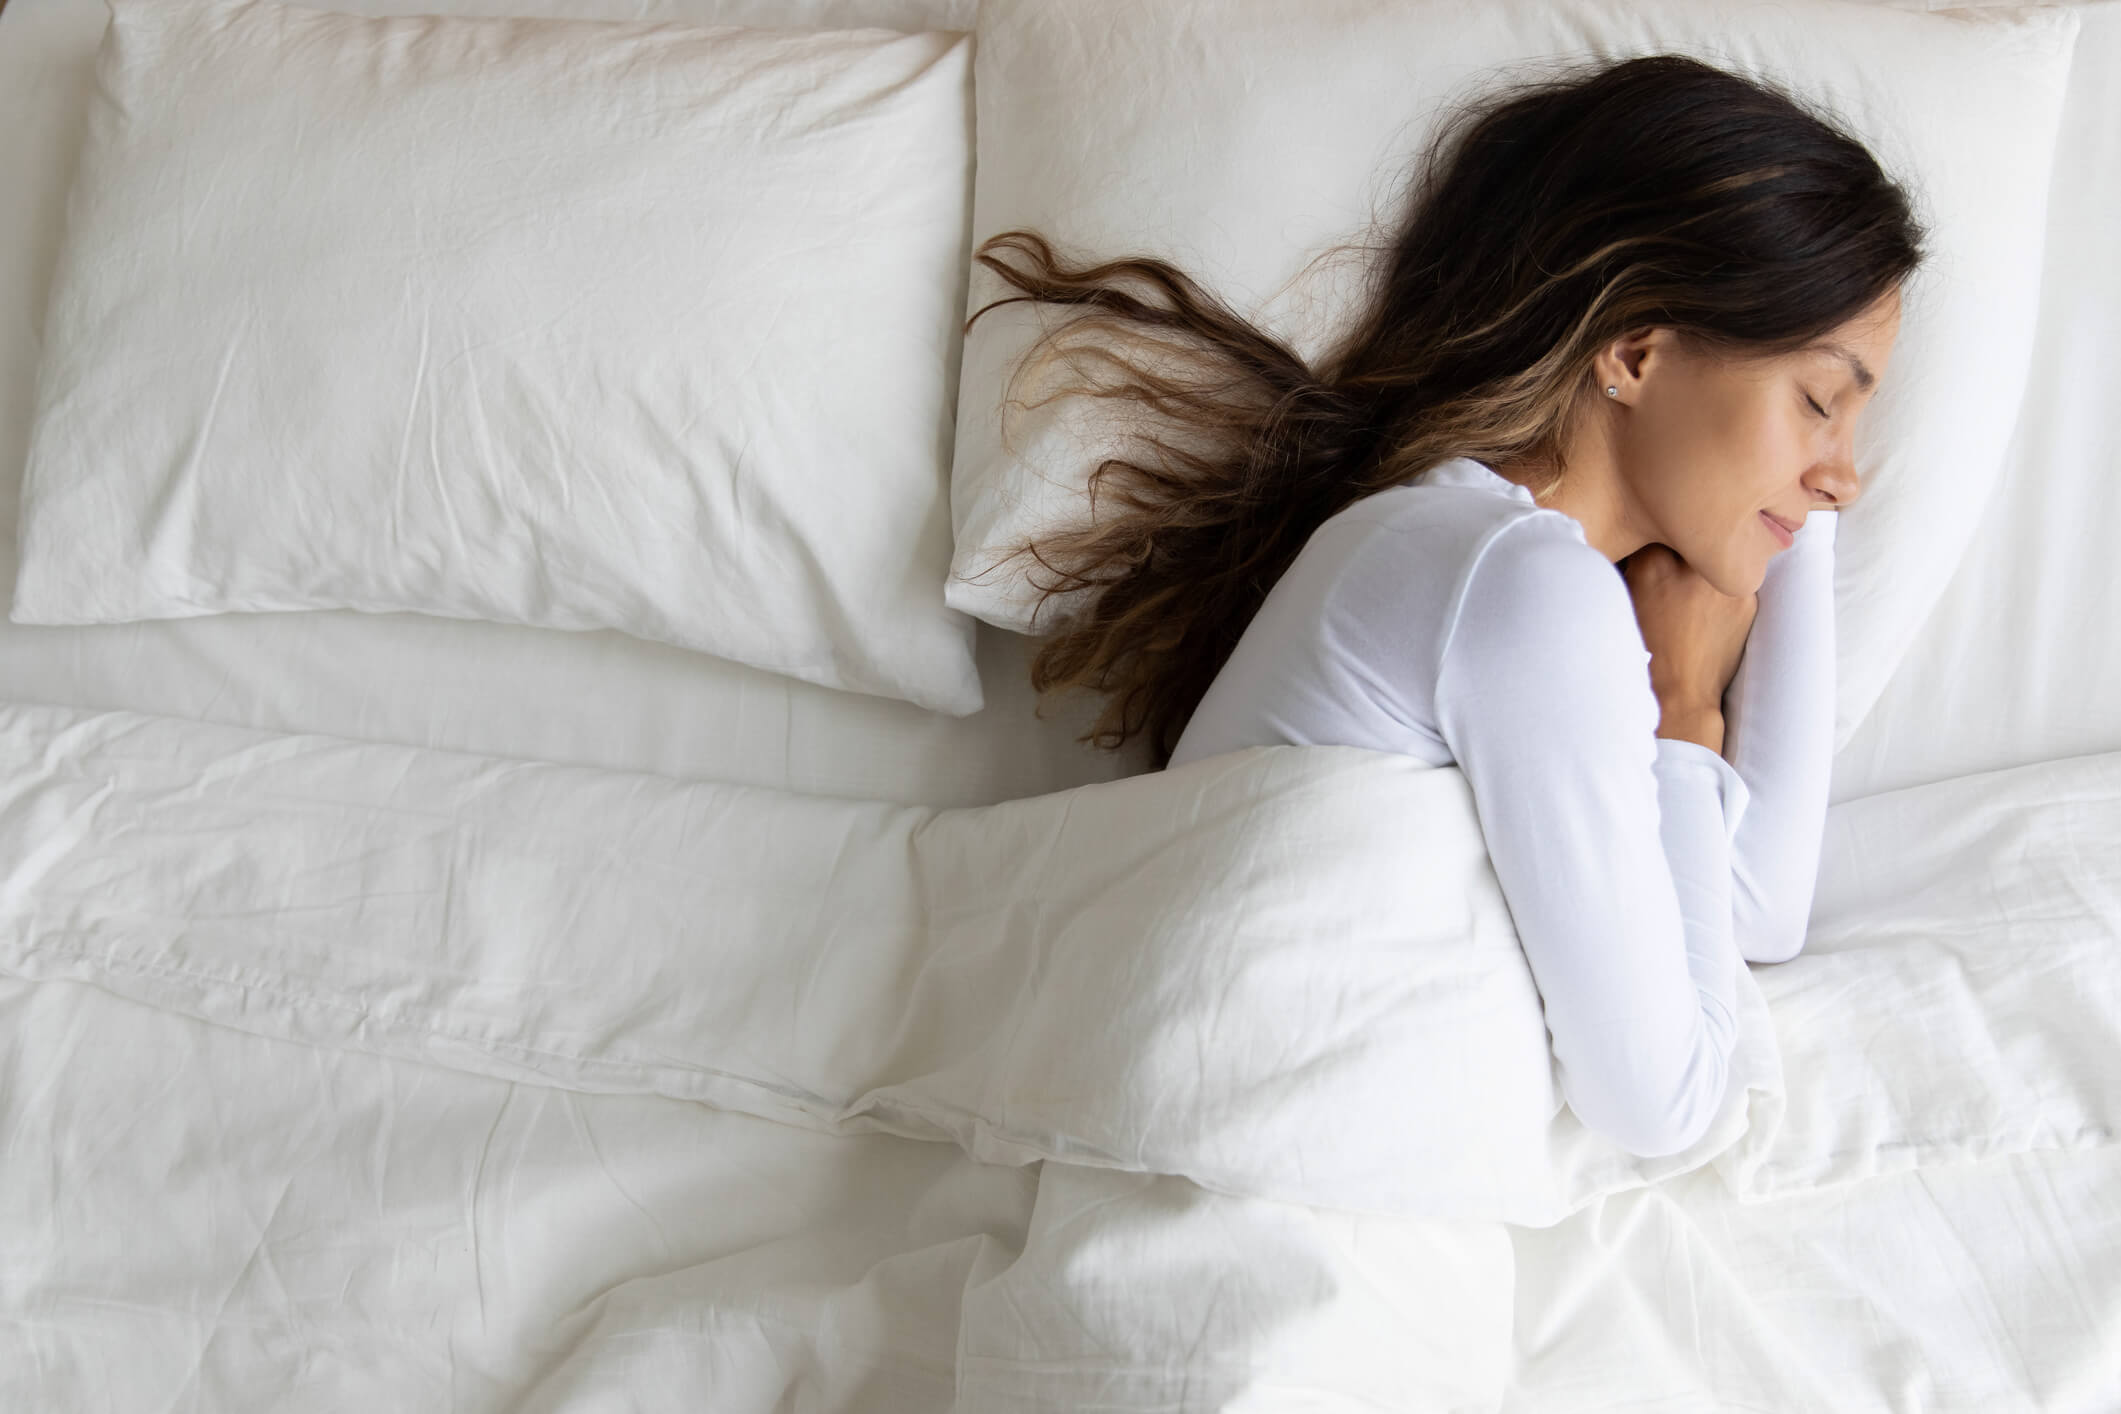 CBD for Sleep: Will it Work For Me?